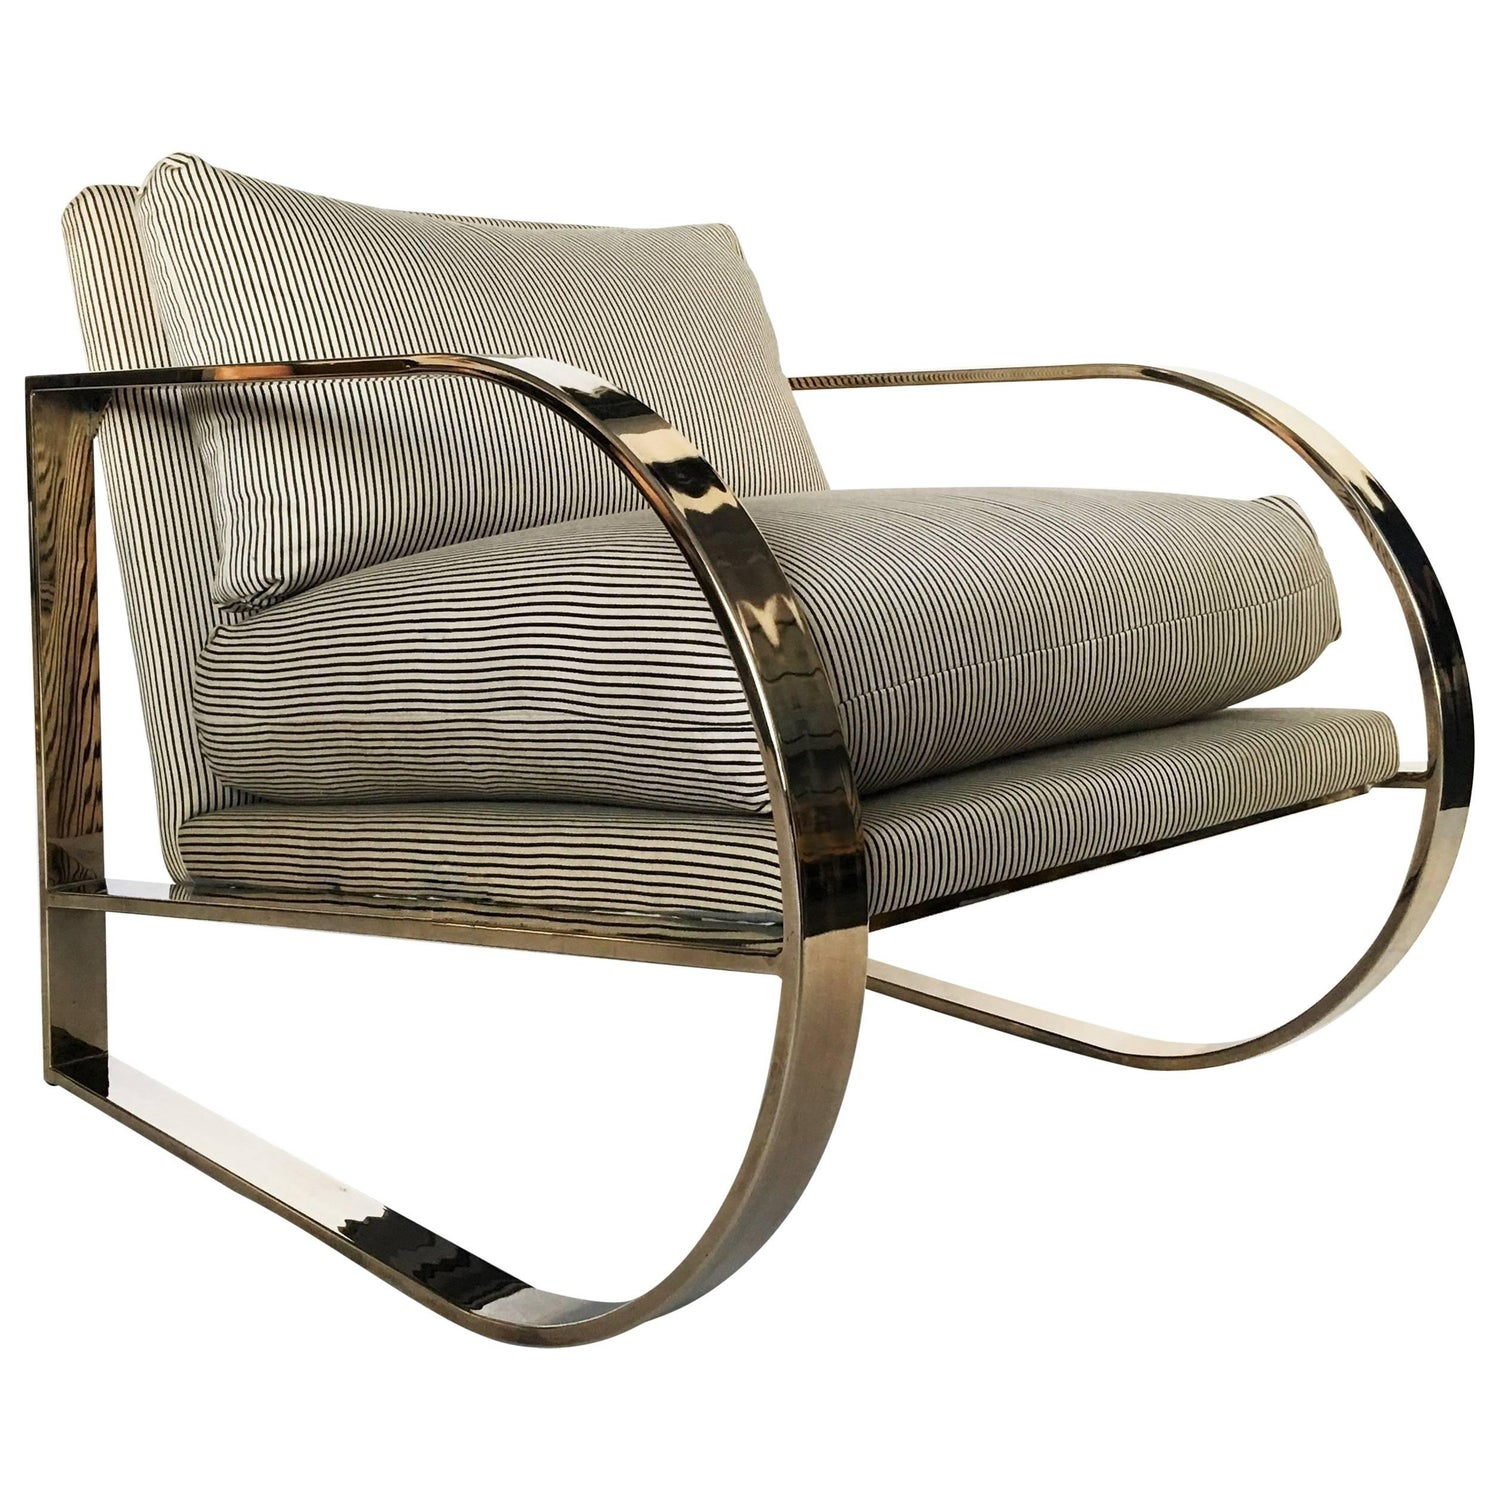 Jens risom floating bench for sale at 1stdibs - Geometric Form Lounge Chair By John Mascheroni For Swaim Originals